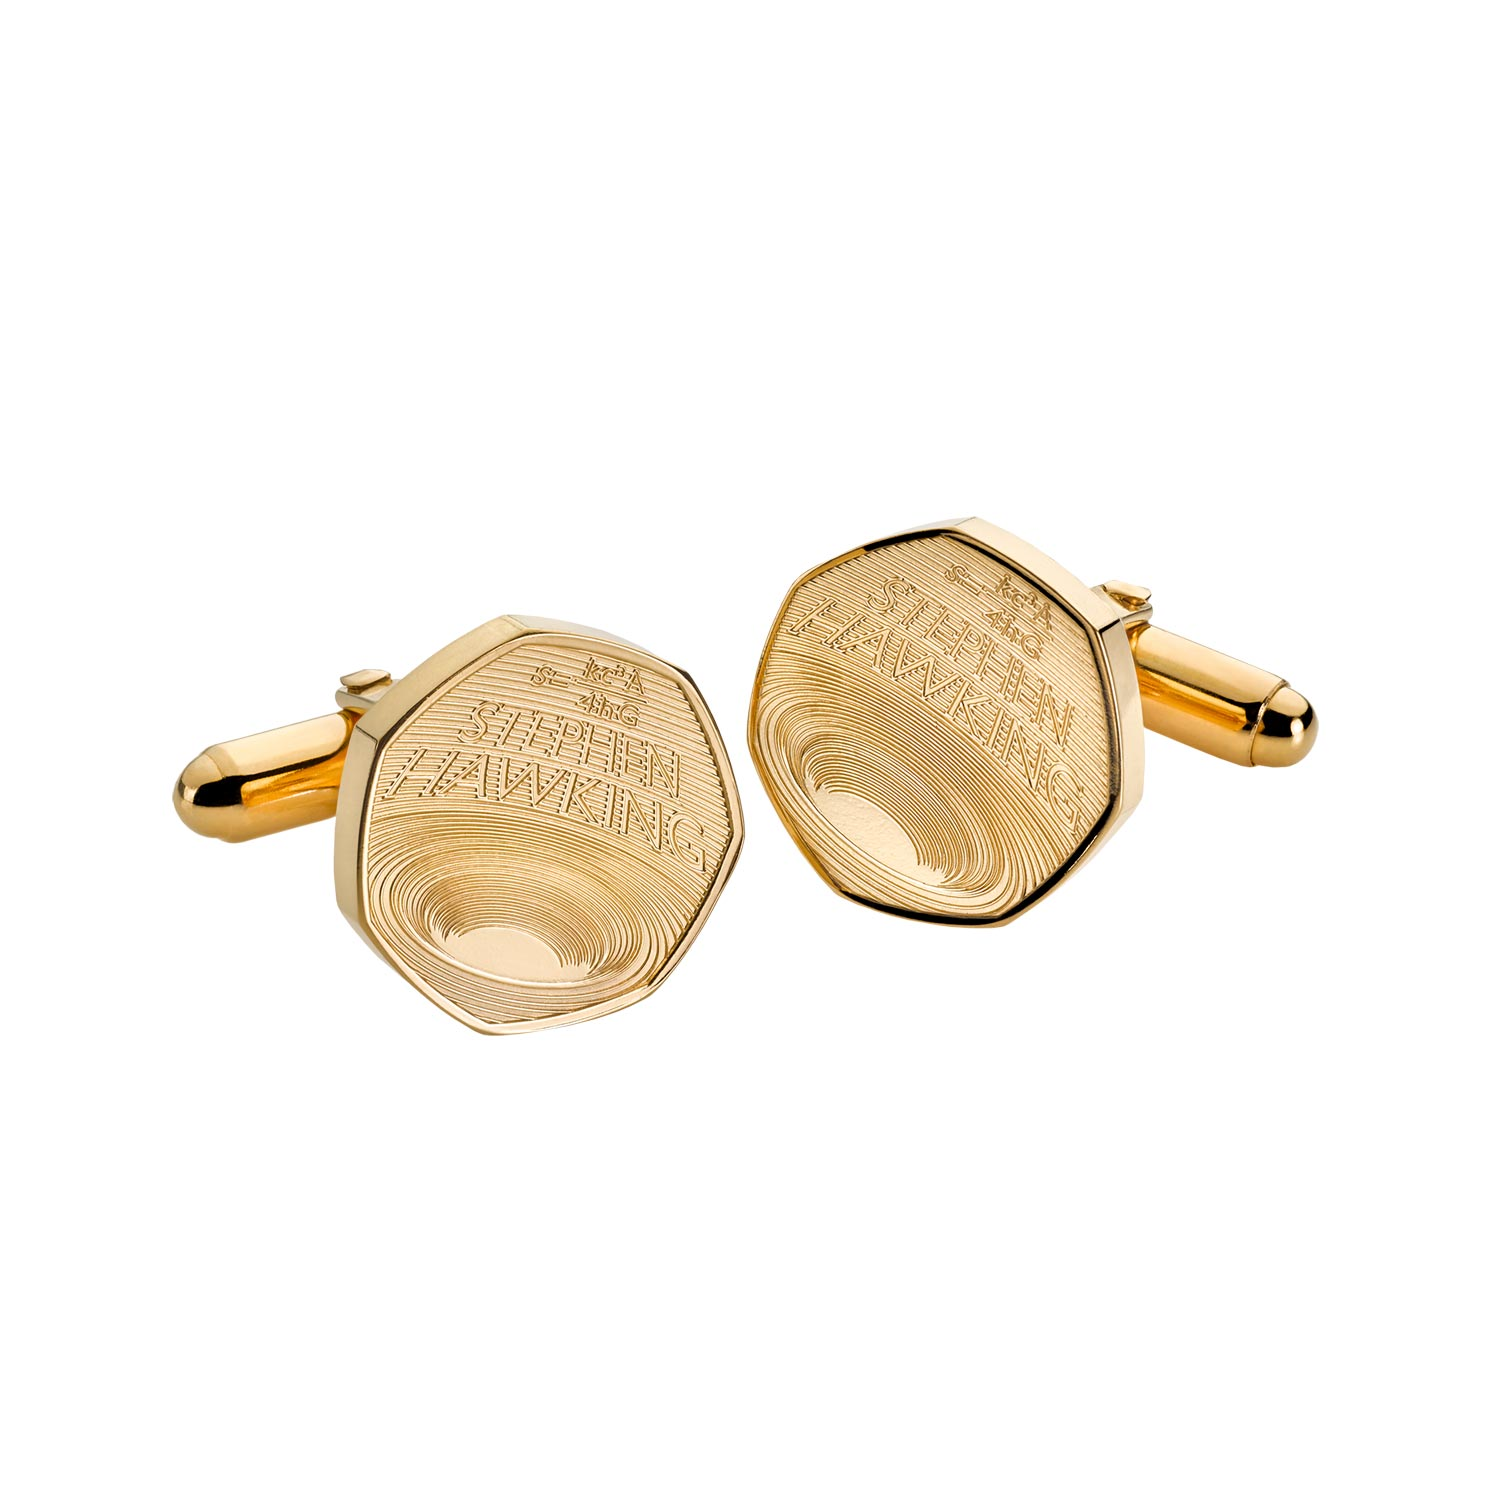 stephen-hawking-gold-cufflinks.jpg